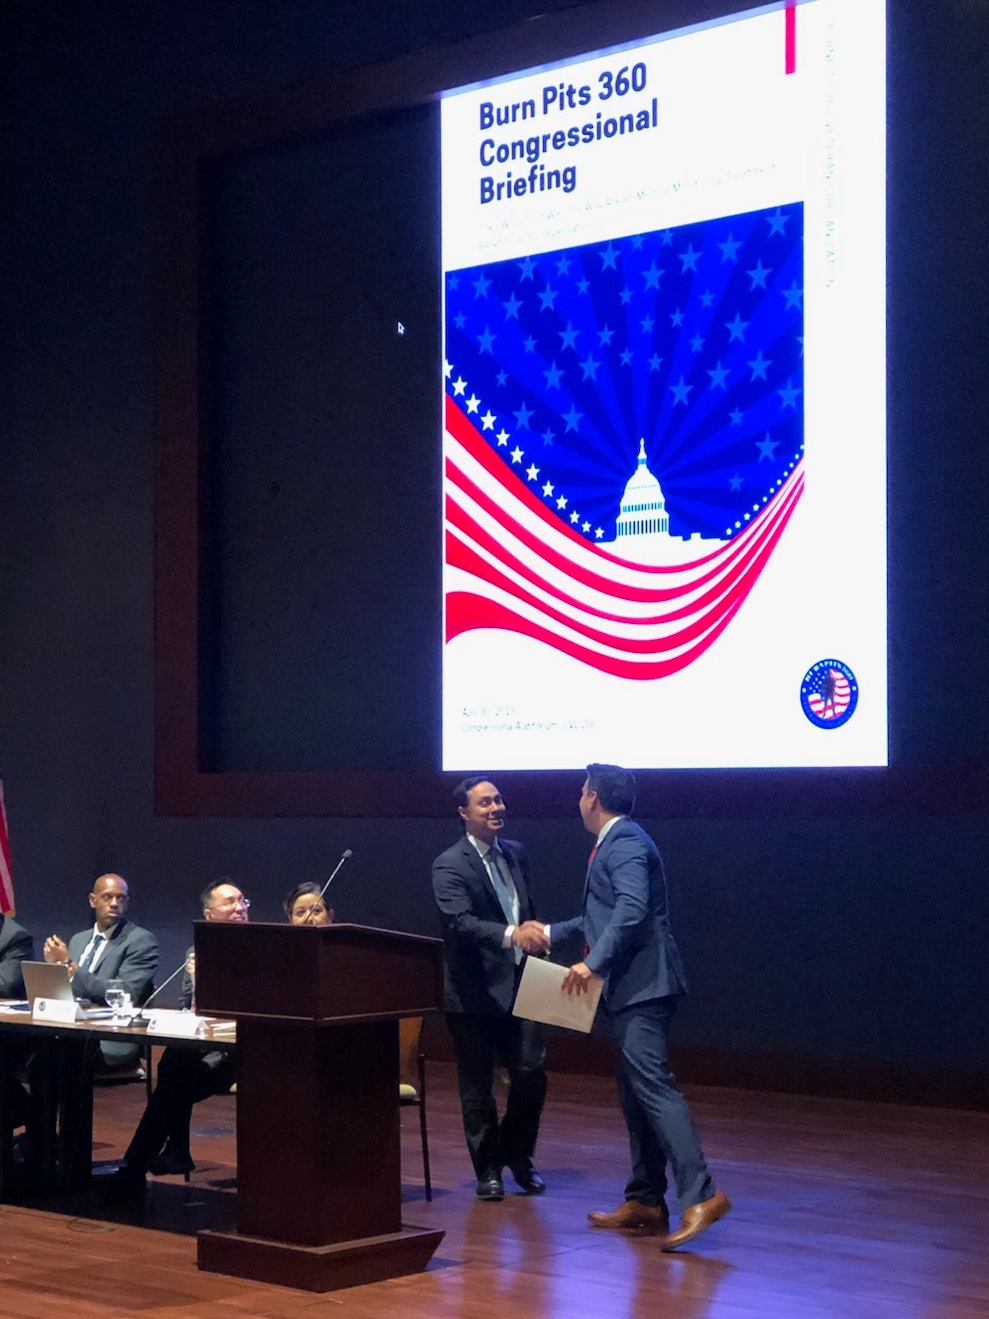 April 30, 2019, Washington D.C. — Rep. Joaquin Castro & Eric Holguin at Burn Pits Congressional Briefing